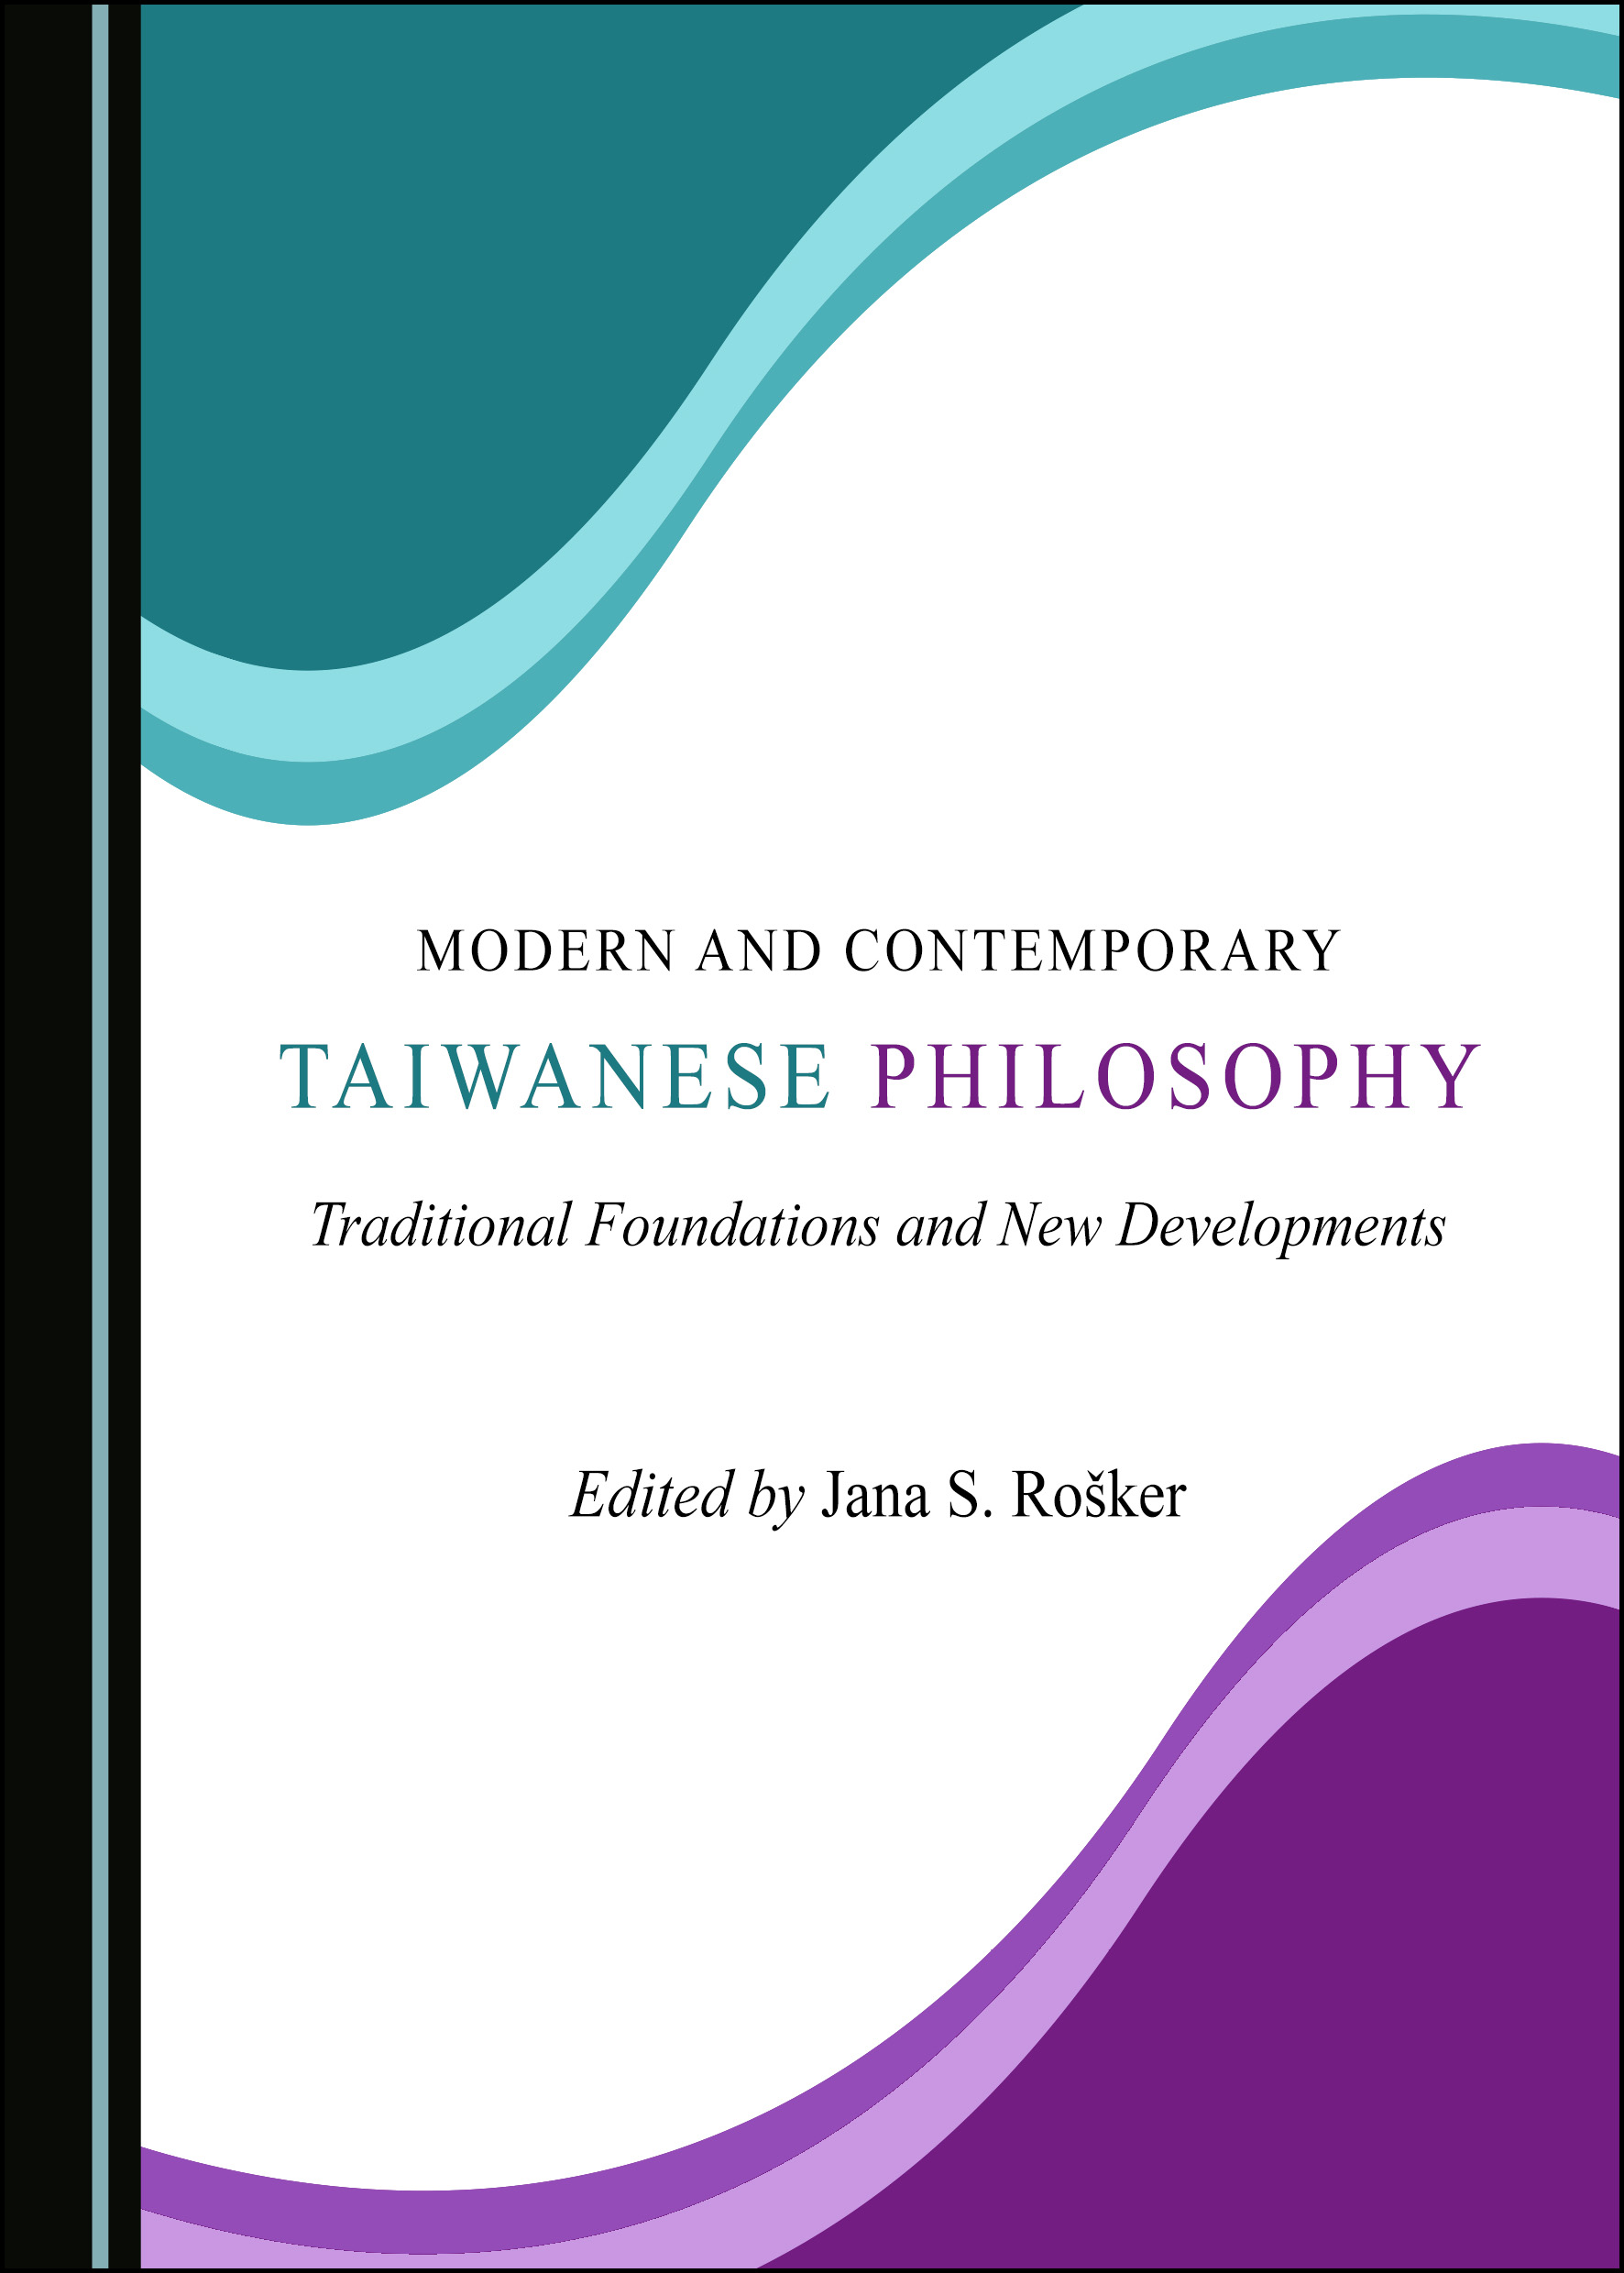 Modern and Contemporary Taiwanese Philosophy: Traditional Foundations and New Developments